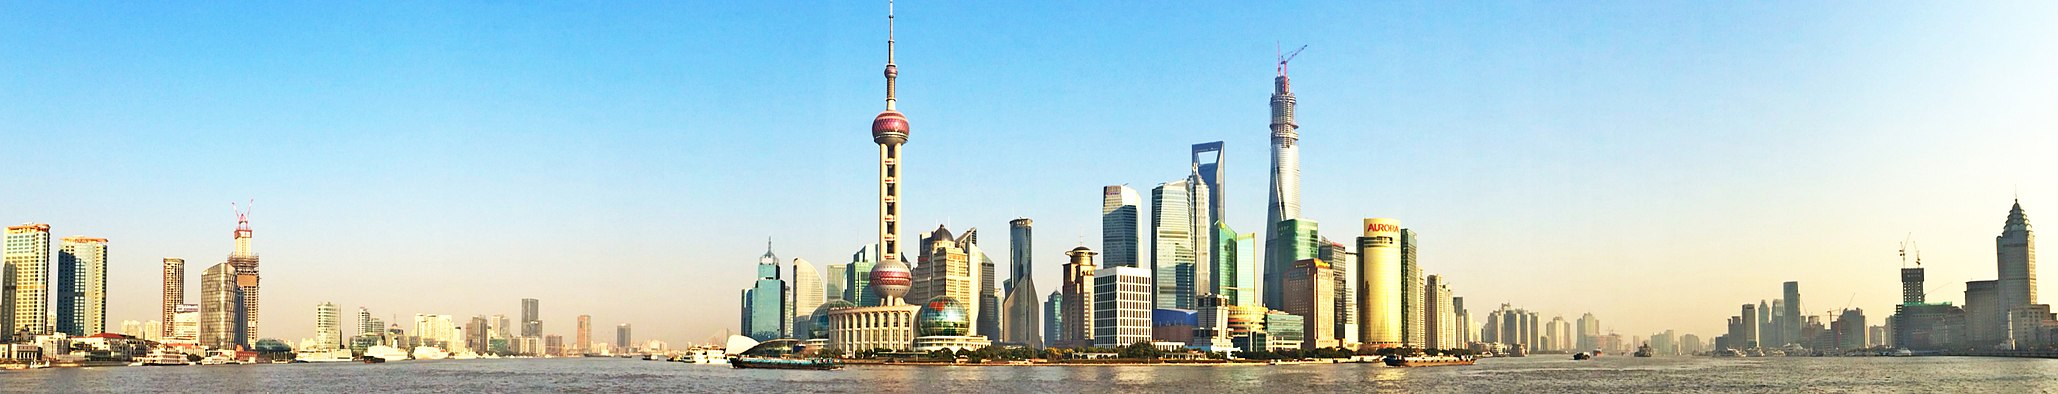 Panoramic view of Pudong's Skyline from the Bund in Shanghai, the largest city proper by population in the world. Shanghai Pudong Panorama Jan 2 2014.jpg